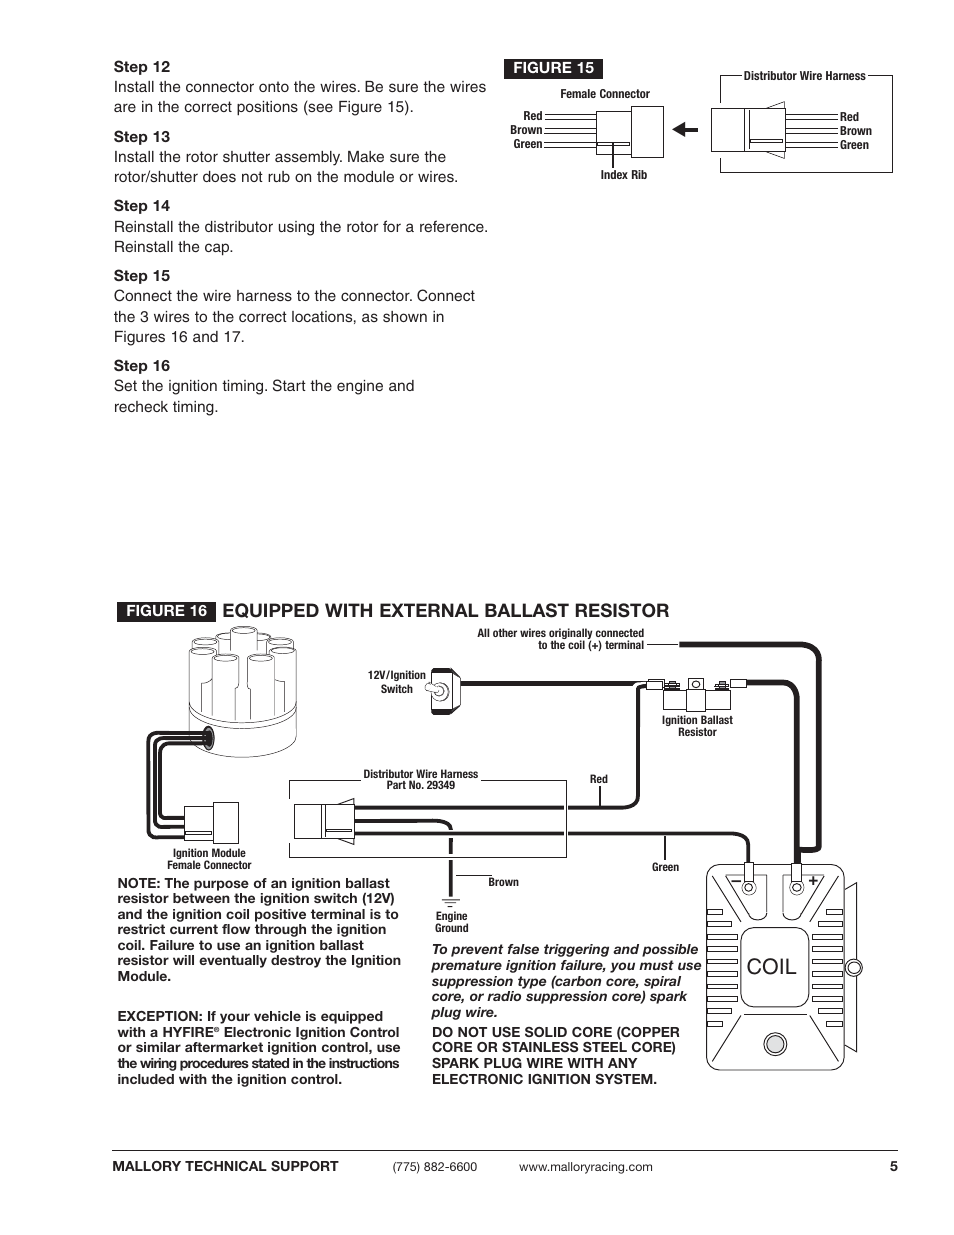 Coil, Equipped with external ballast resistor | Mallory Ignition Mallory  E-SPARK BREAKERLESS CONVERSION KIT 61010M_61011M User Manual | Page 5 / 8